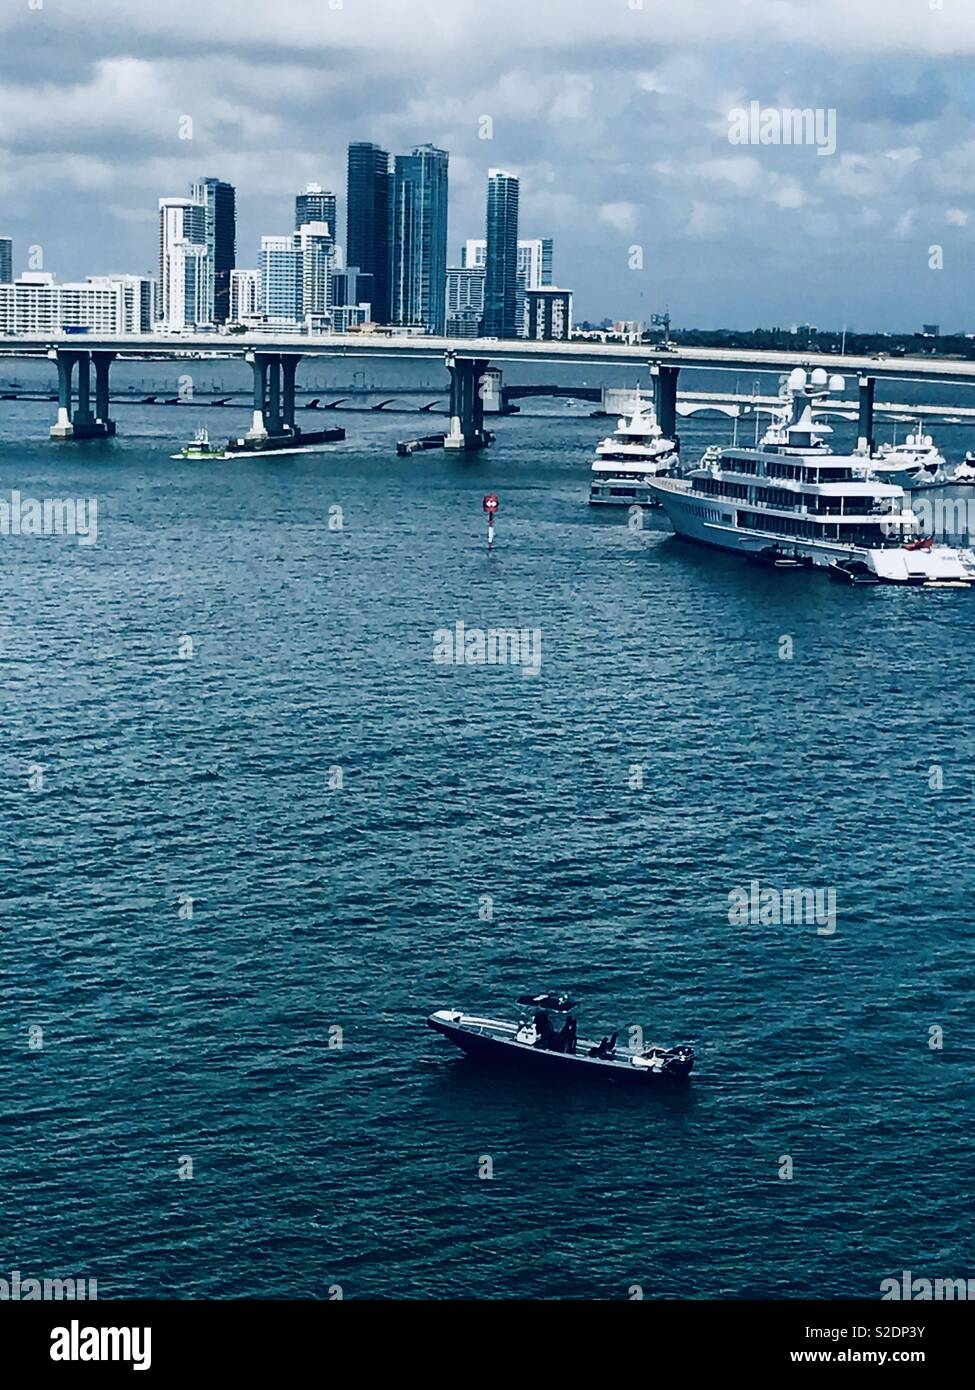 Cruise Liners are docked in Miami Harbour, Florida - Stock Image